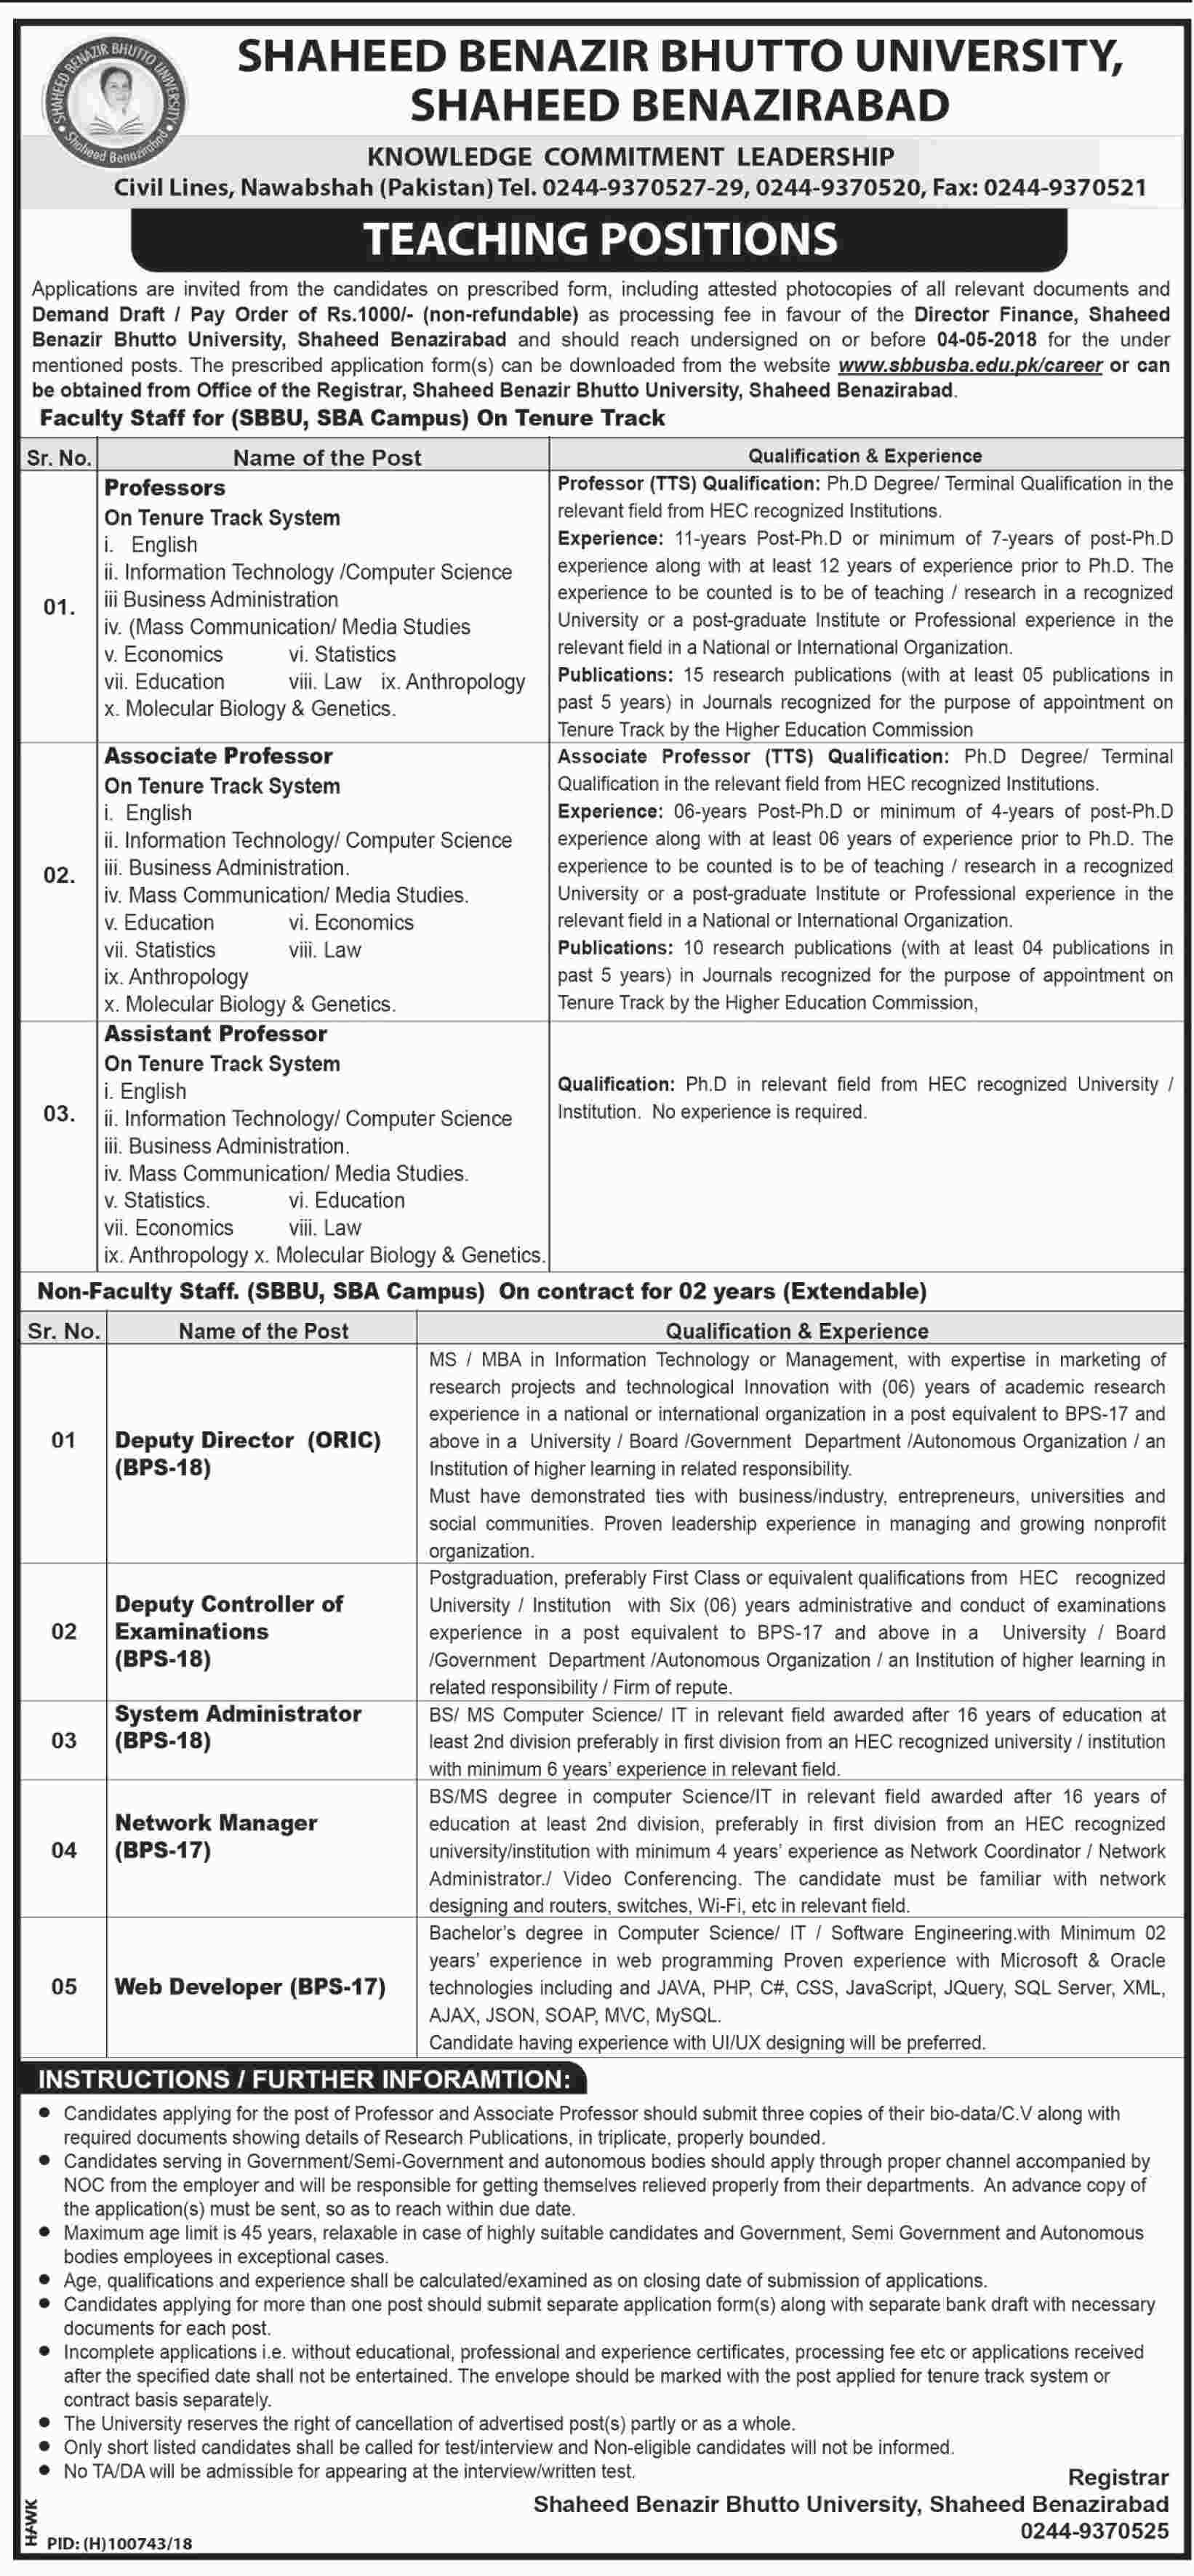 Jobs In Shaheed Benazir Bhutto University 14 Apr 2018